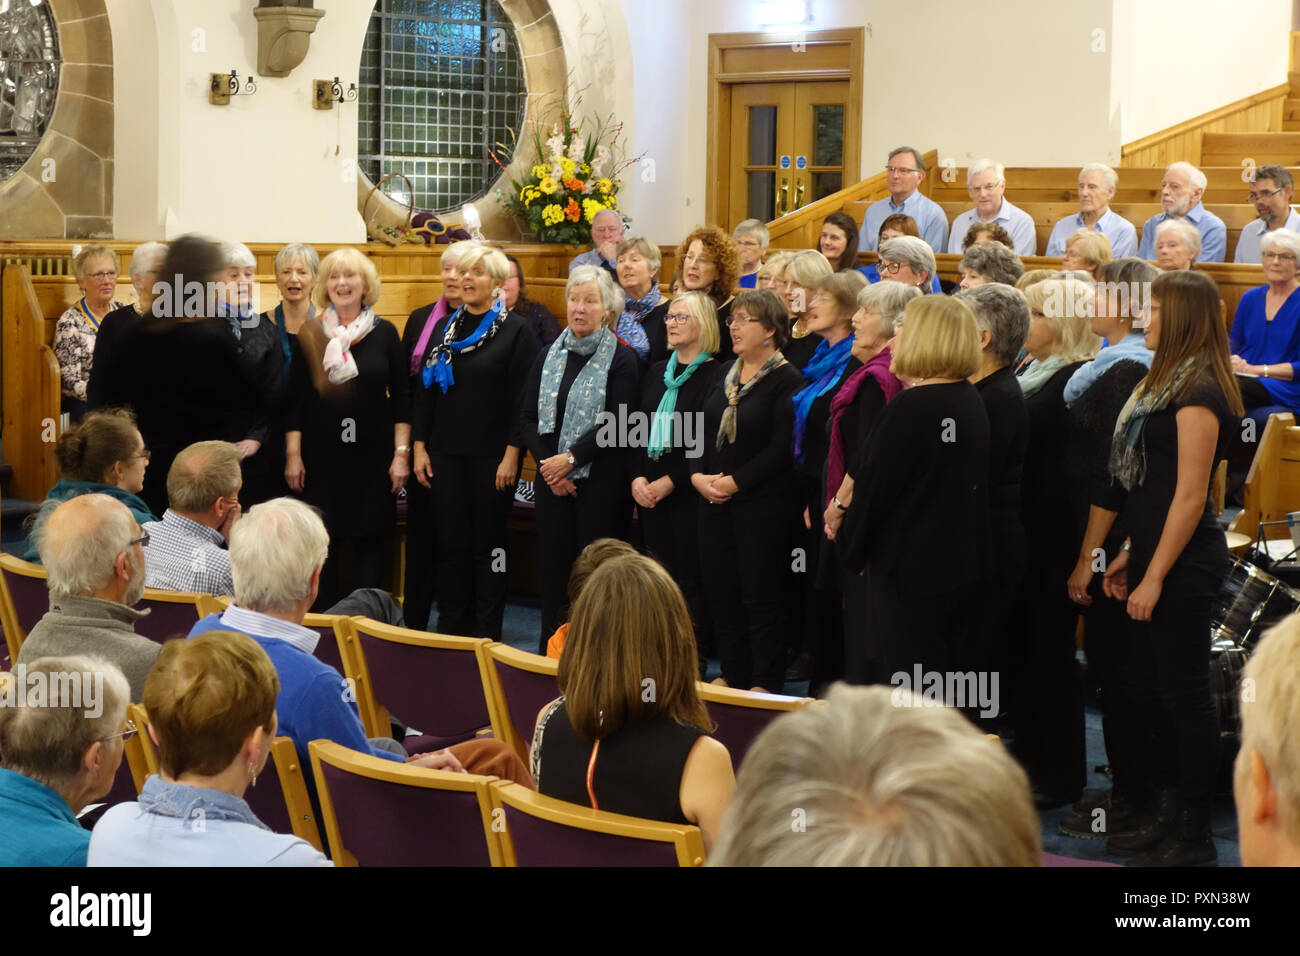 Concert by North Berwick Sings - Stock Image